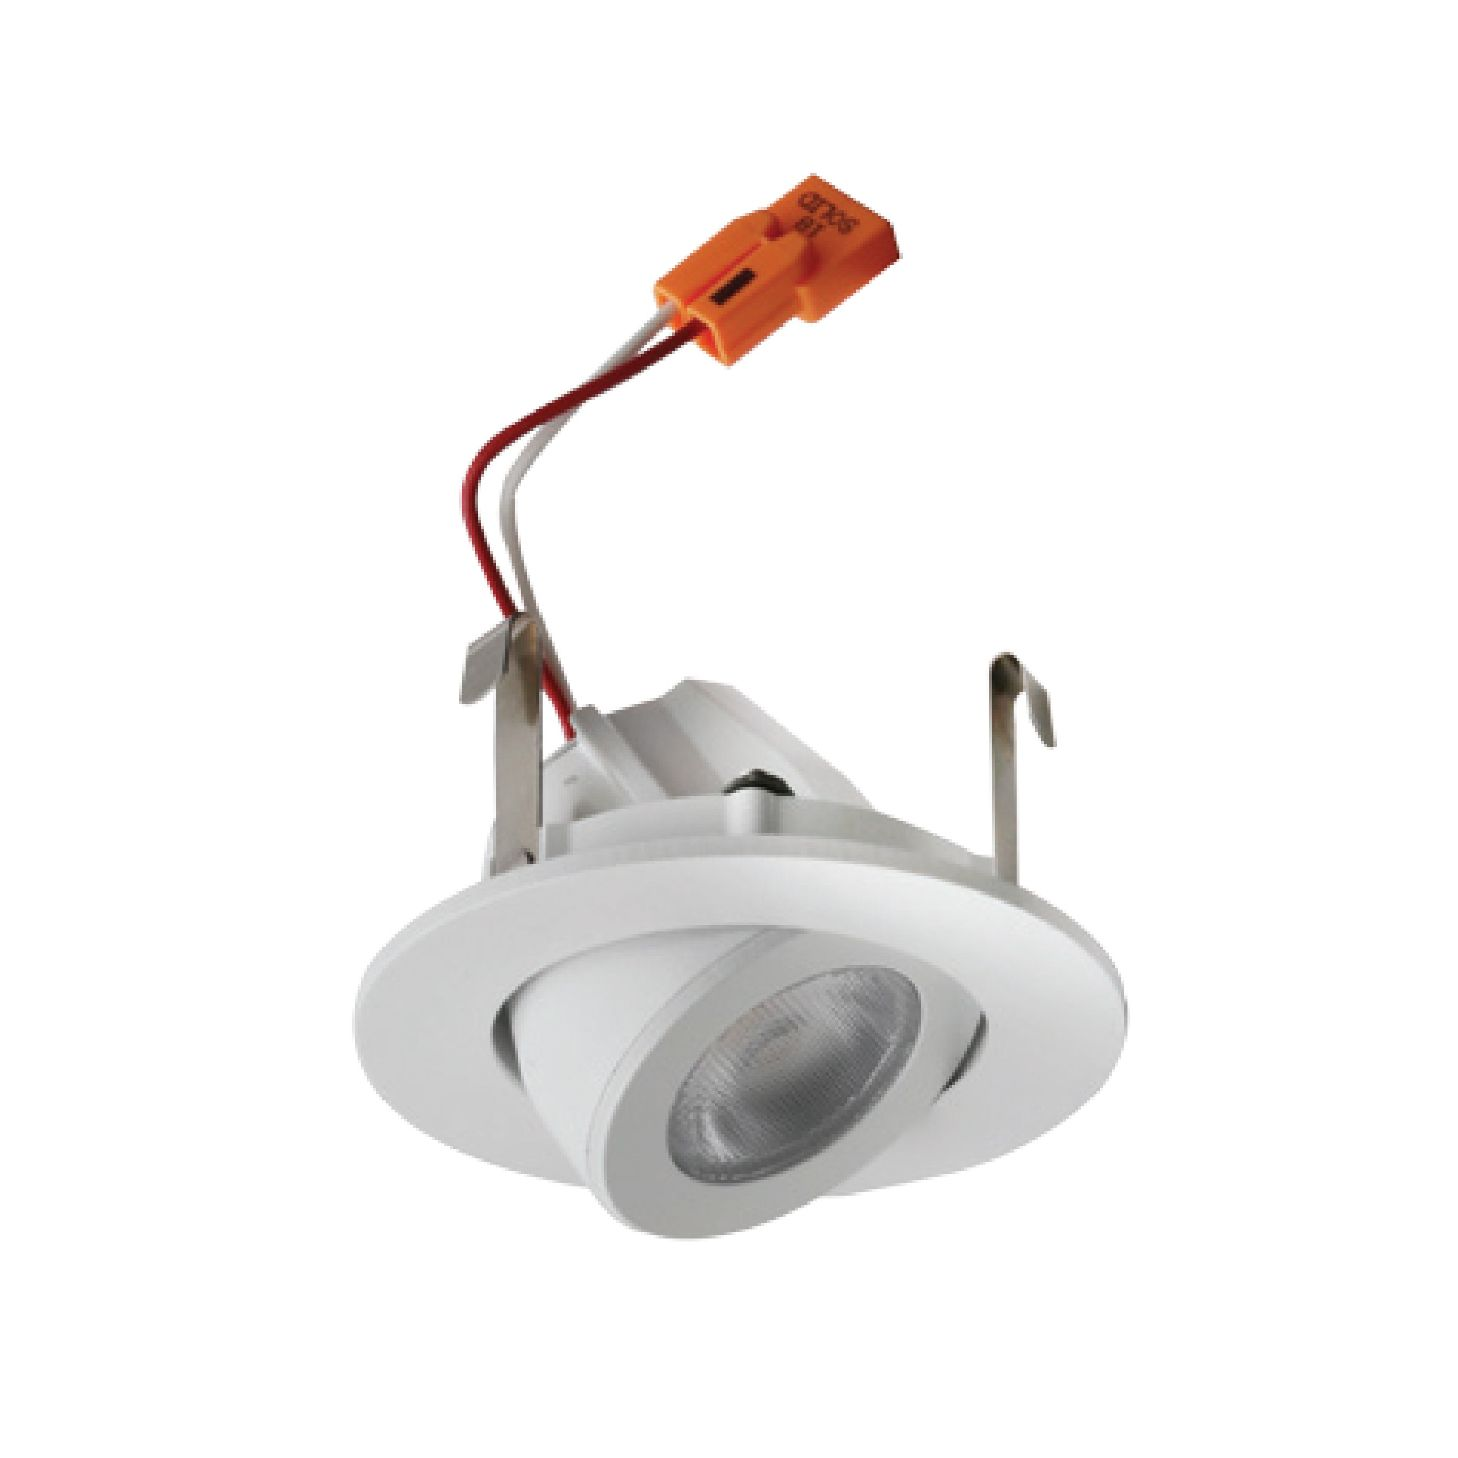 Image of: Alcon Lighting 14039 Architectural High Performance Low Profile 2 Inch Adjustable Led Recessed Light Trim And Housing 2700k Warm White Light Alconlighting Com